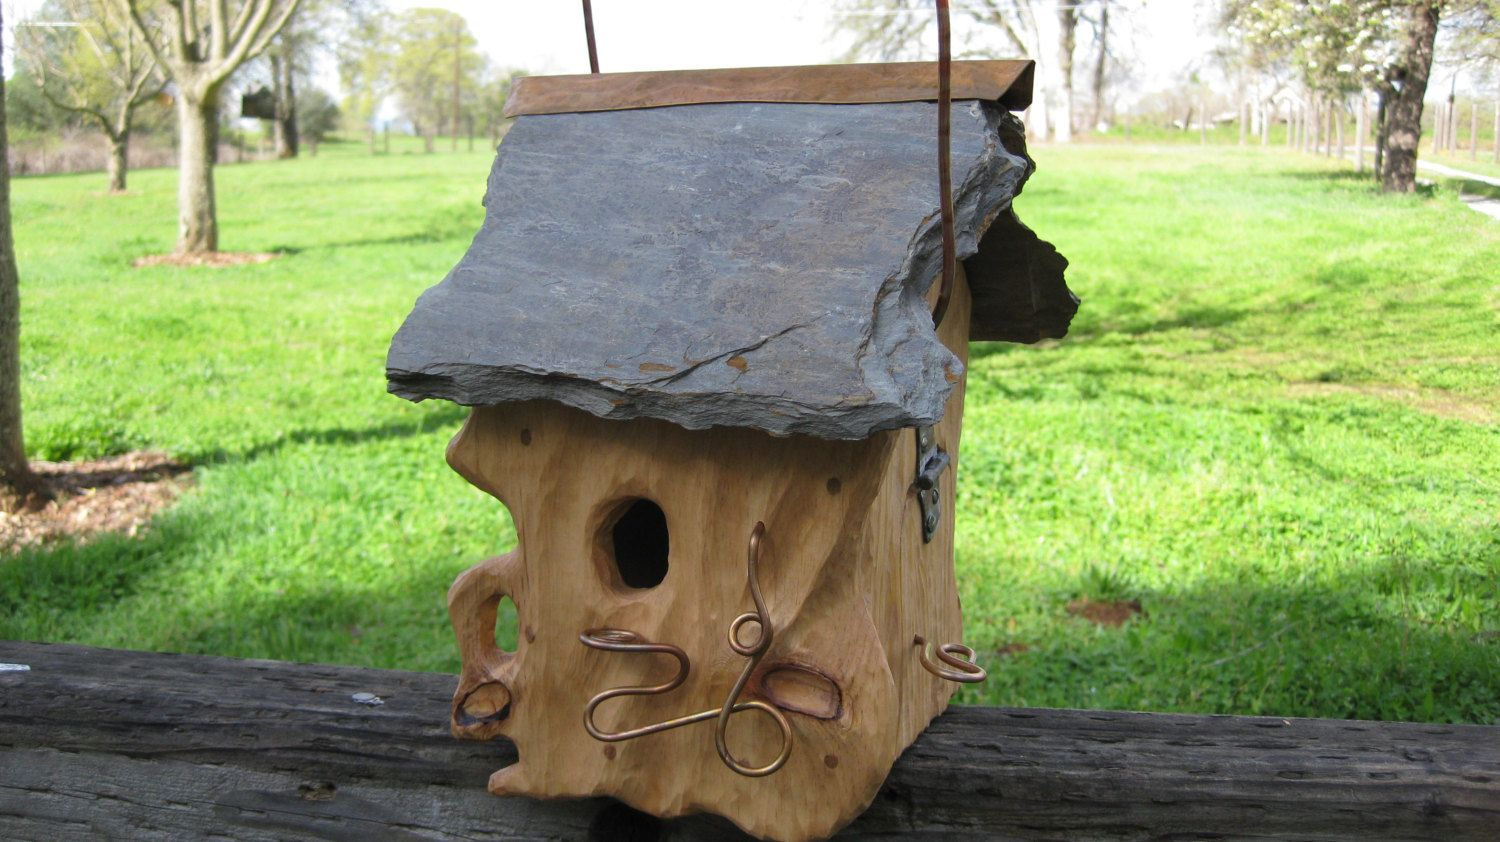 This Is A Beautiful Unique And Rustic One Of A Kind Hand Crafted Birdhouse It Is Sculpted Pine With A Slat Unique Bird Houses Bird Houses Birdhouses Rustic